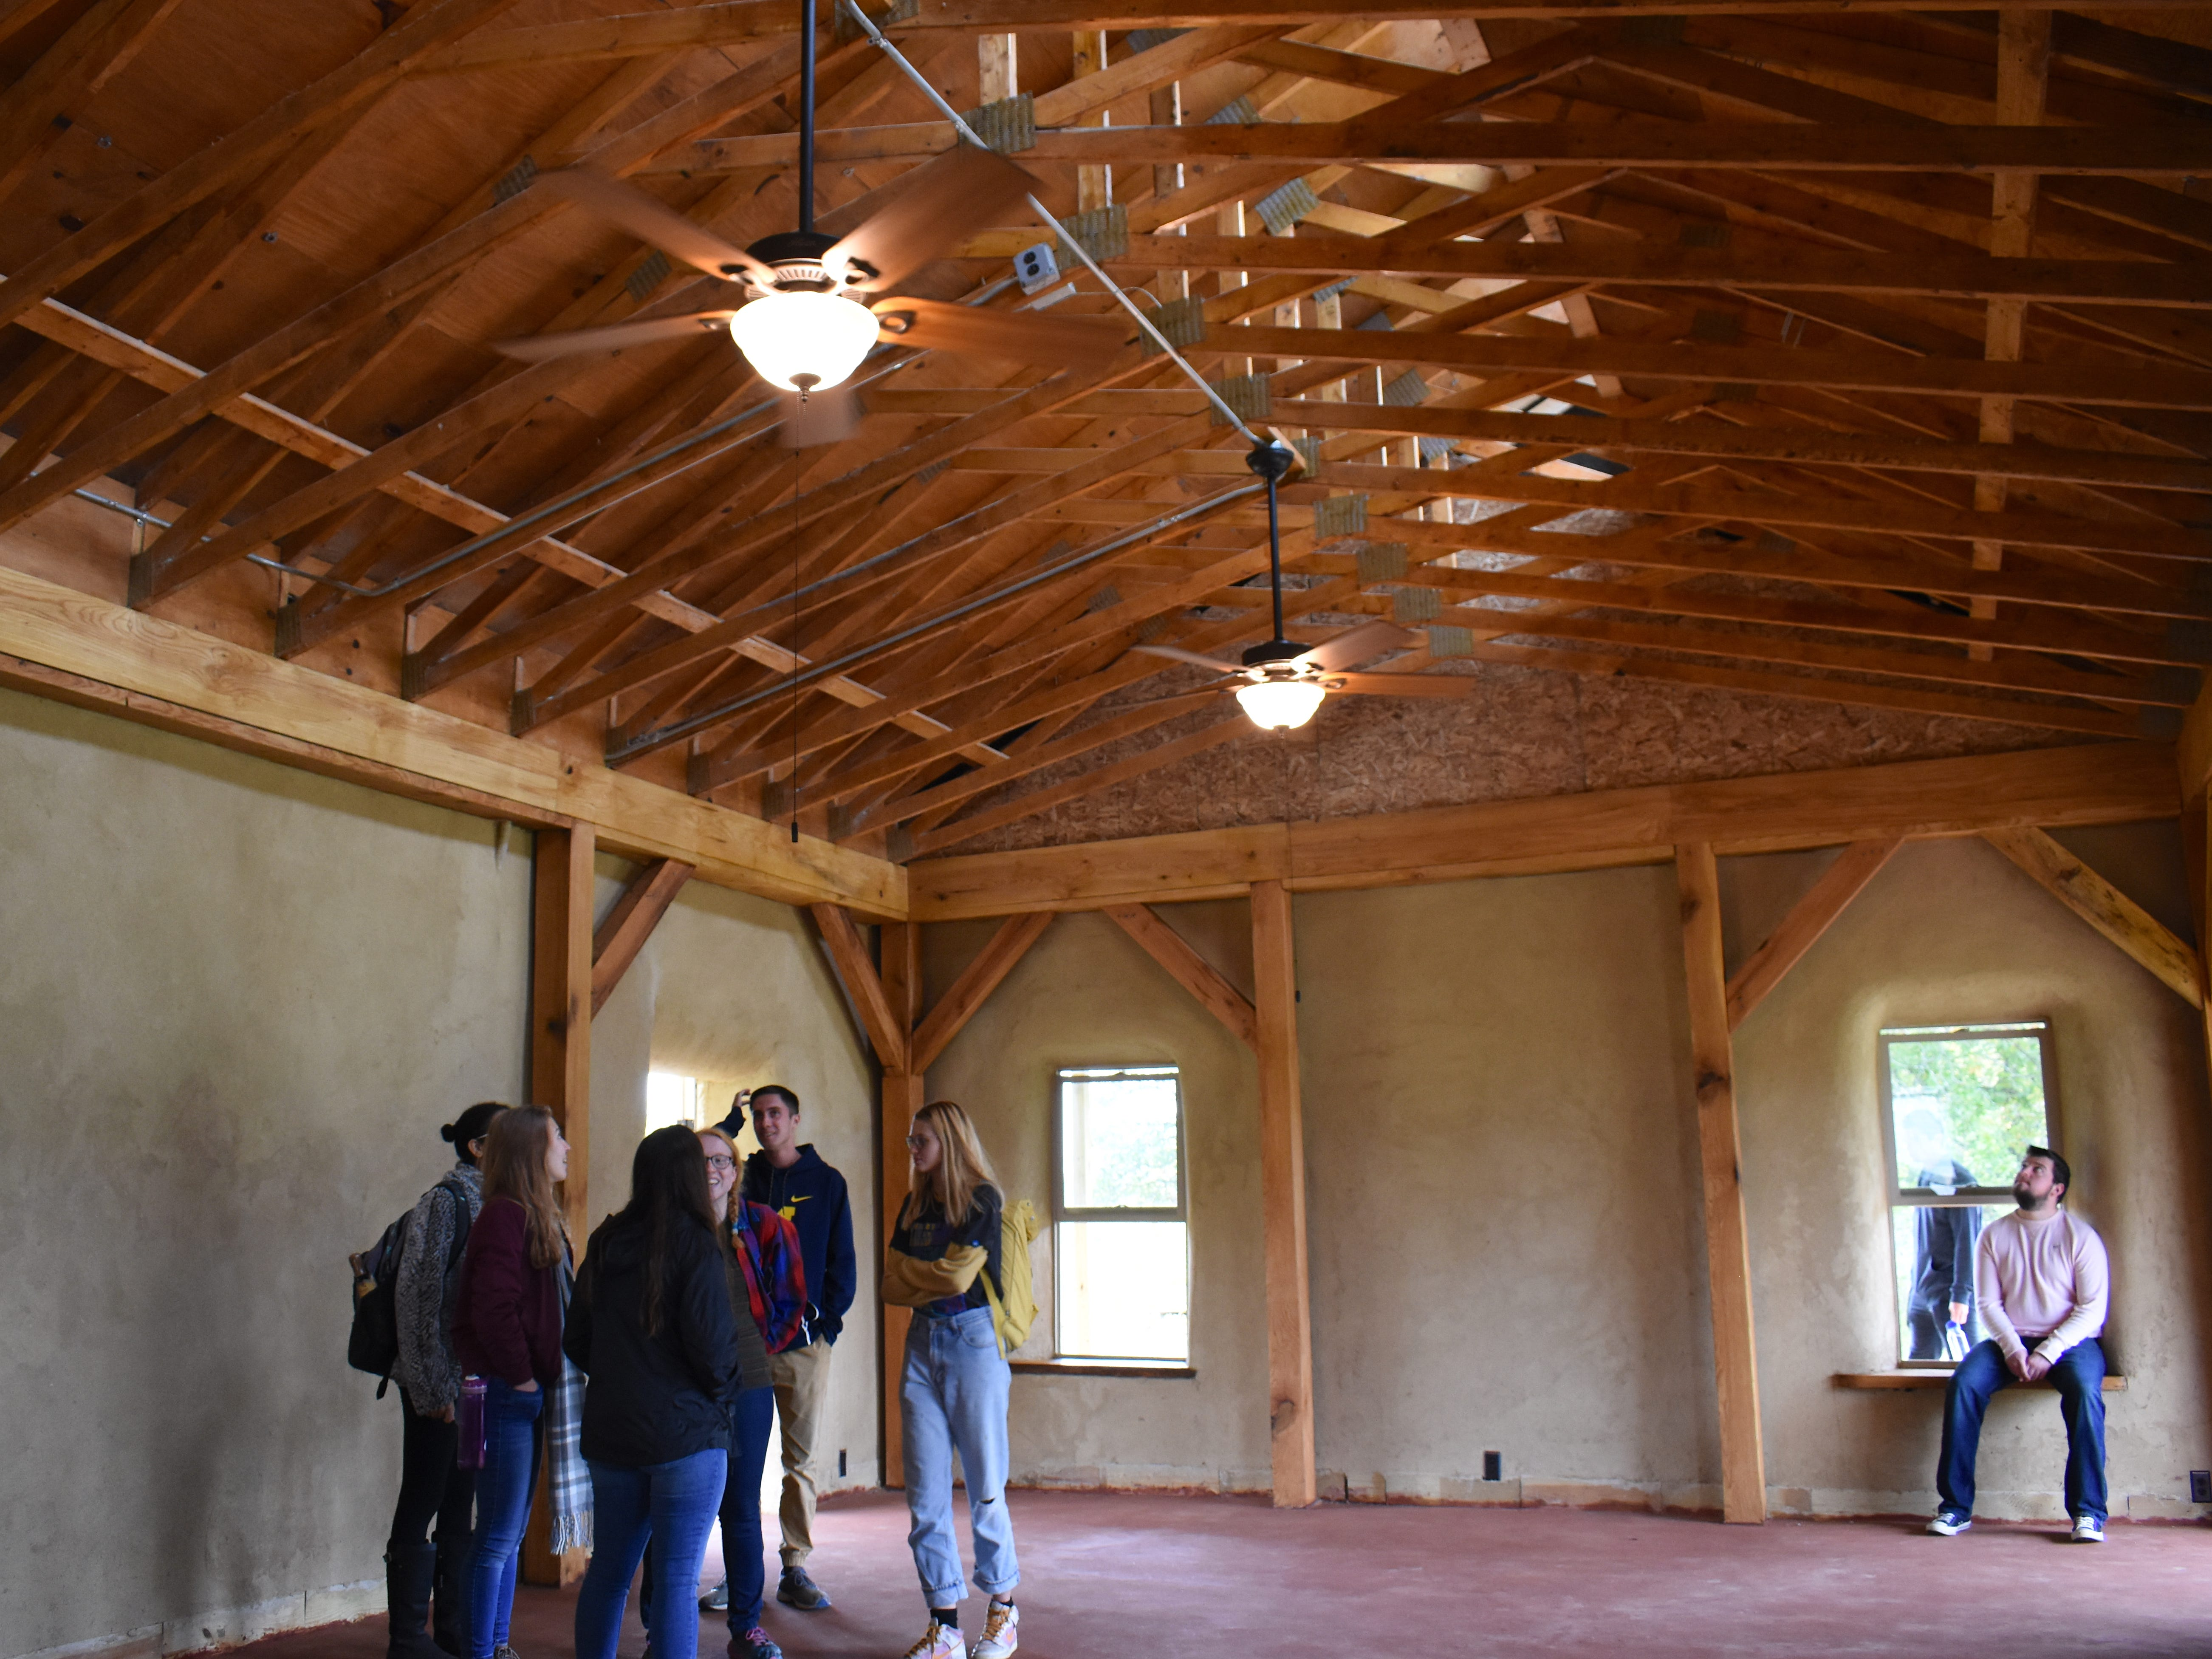 Visitors take a look at the interior of the off-the-grid Straw Bale Building at the Campus Farm in Ann Arbor Sunday.